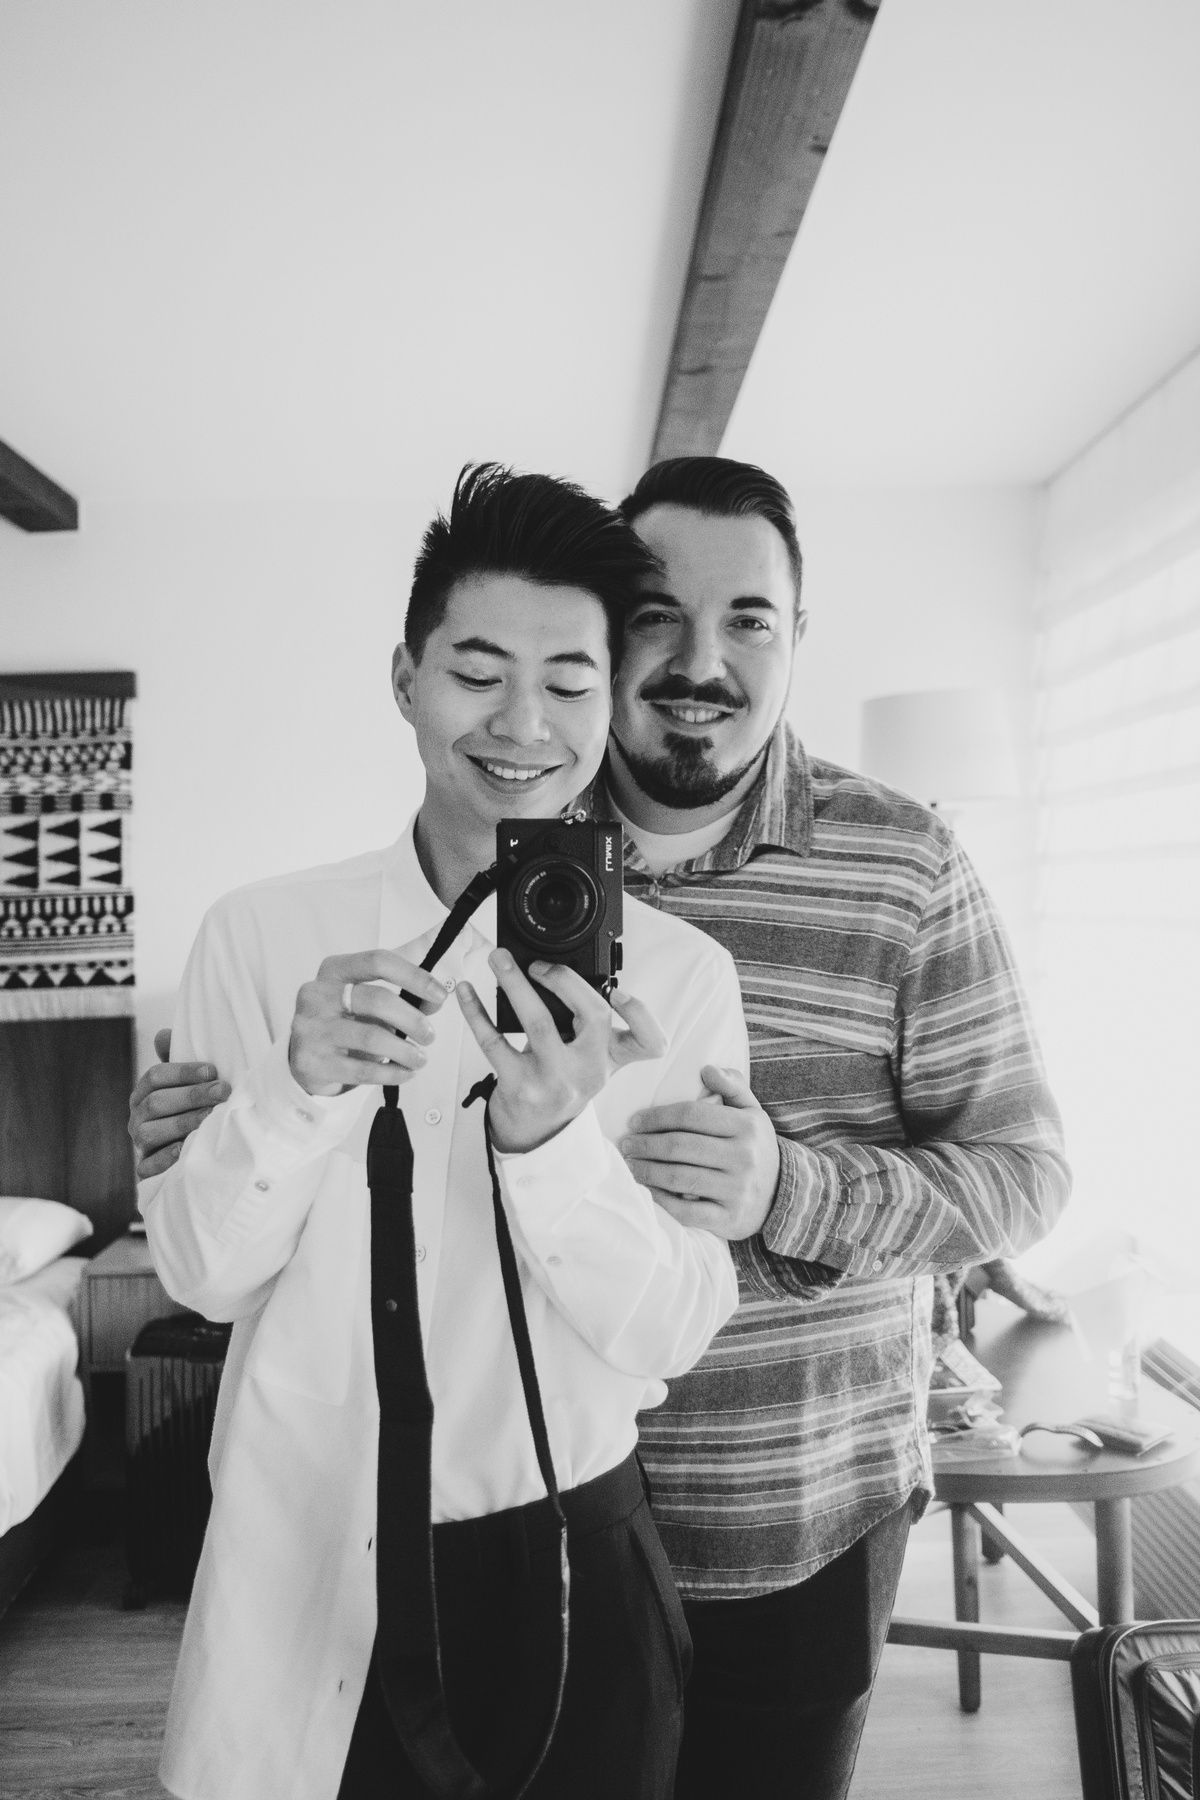 Black and white photo of two men taking a selfie in a mirror, one has their arms around the other